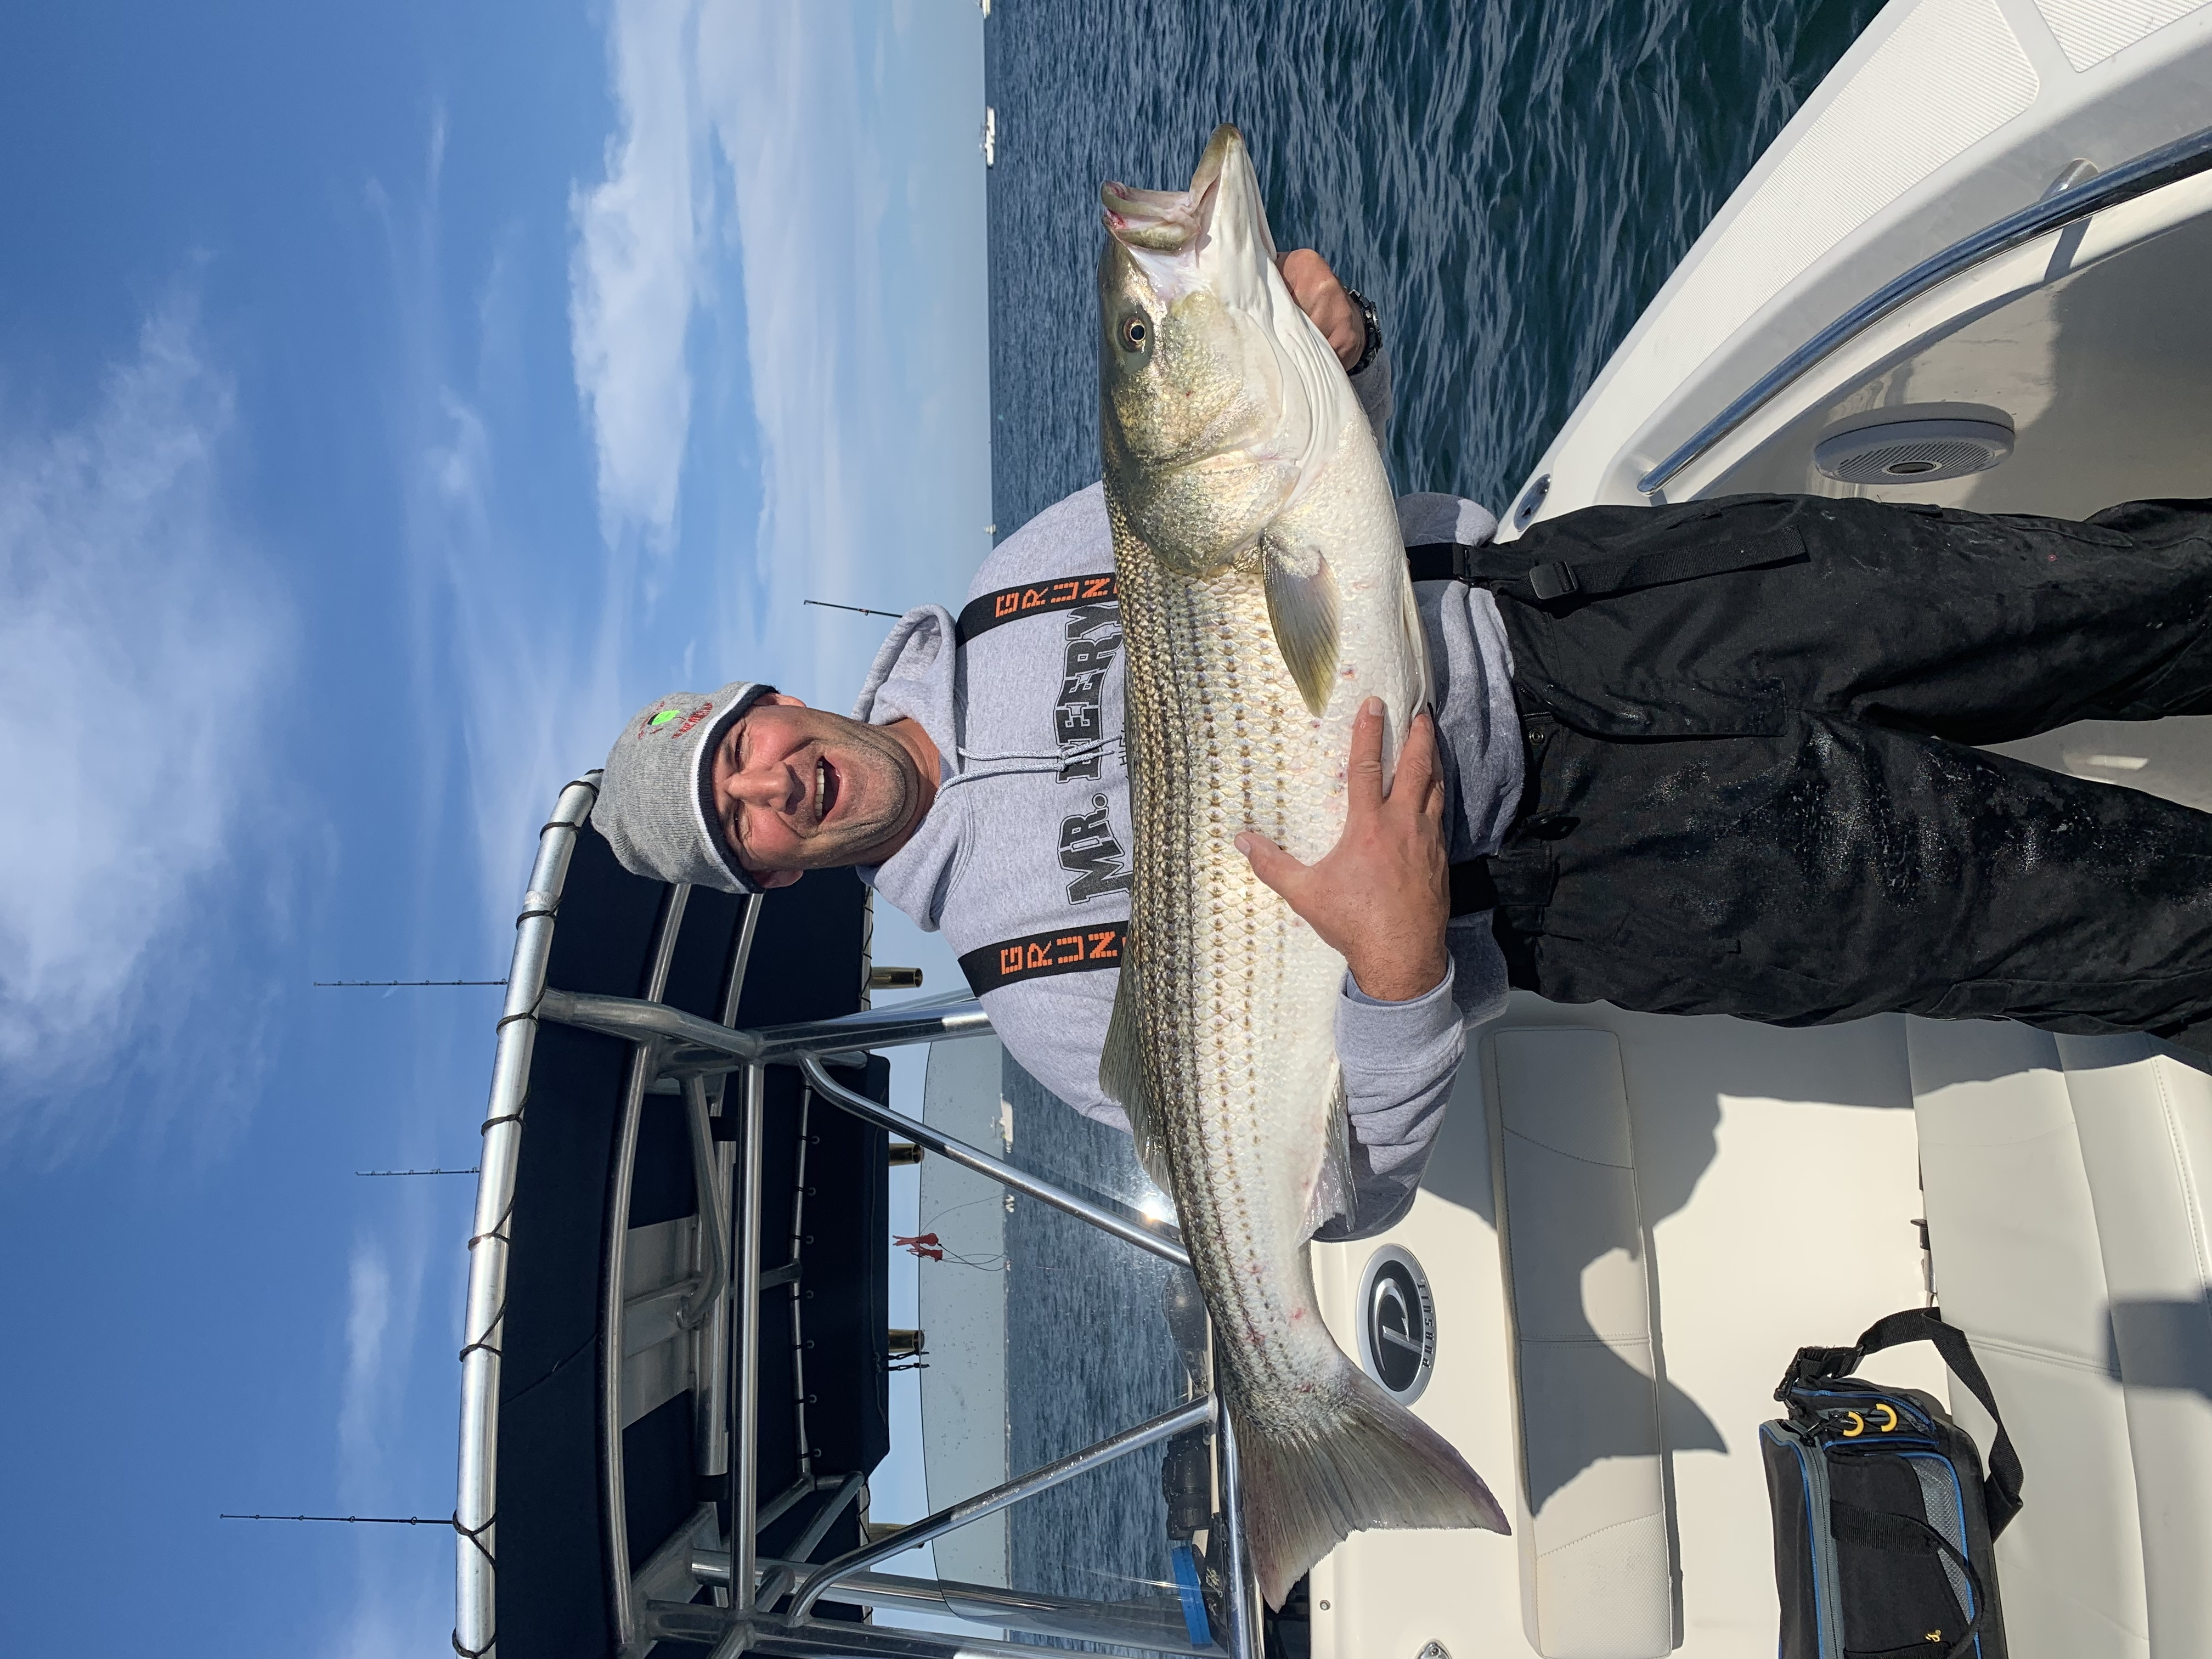 Chris Capalbo and a lot of anglers stumbled onto red hot fishing for big striped bass outside Shinnecock Inlet over the weekend.